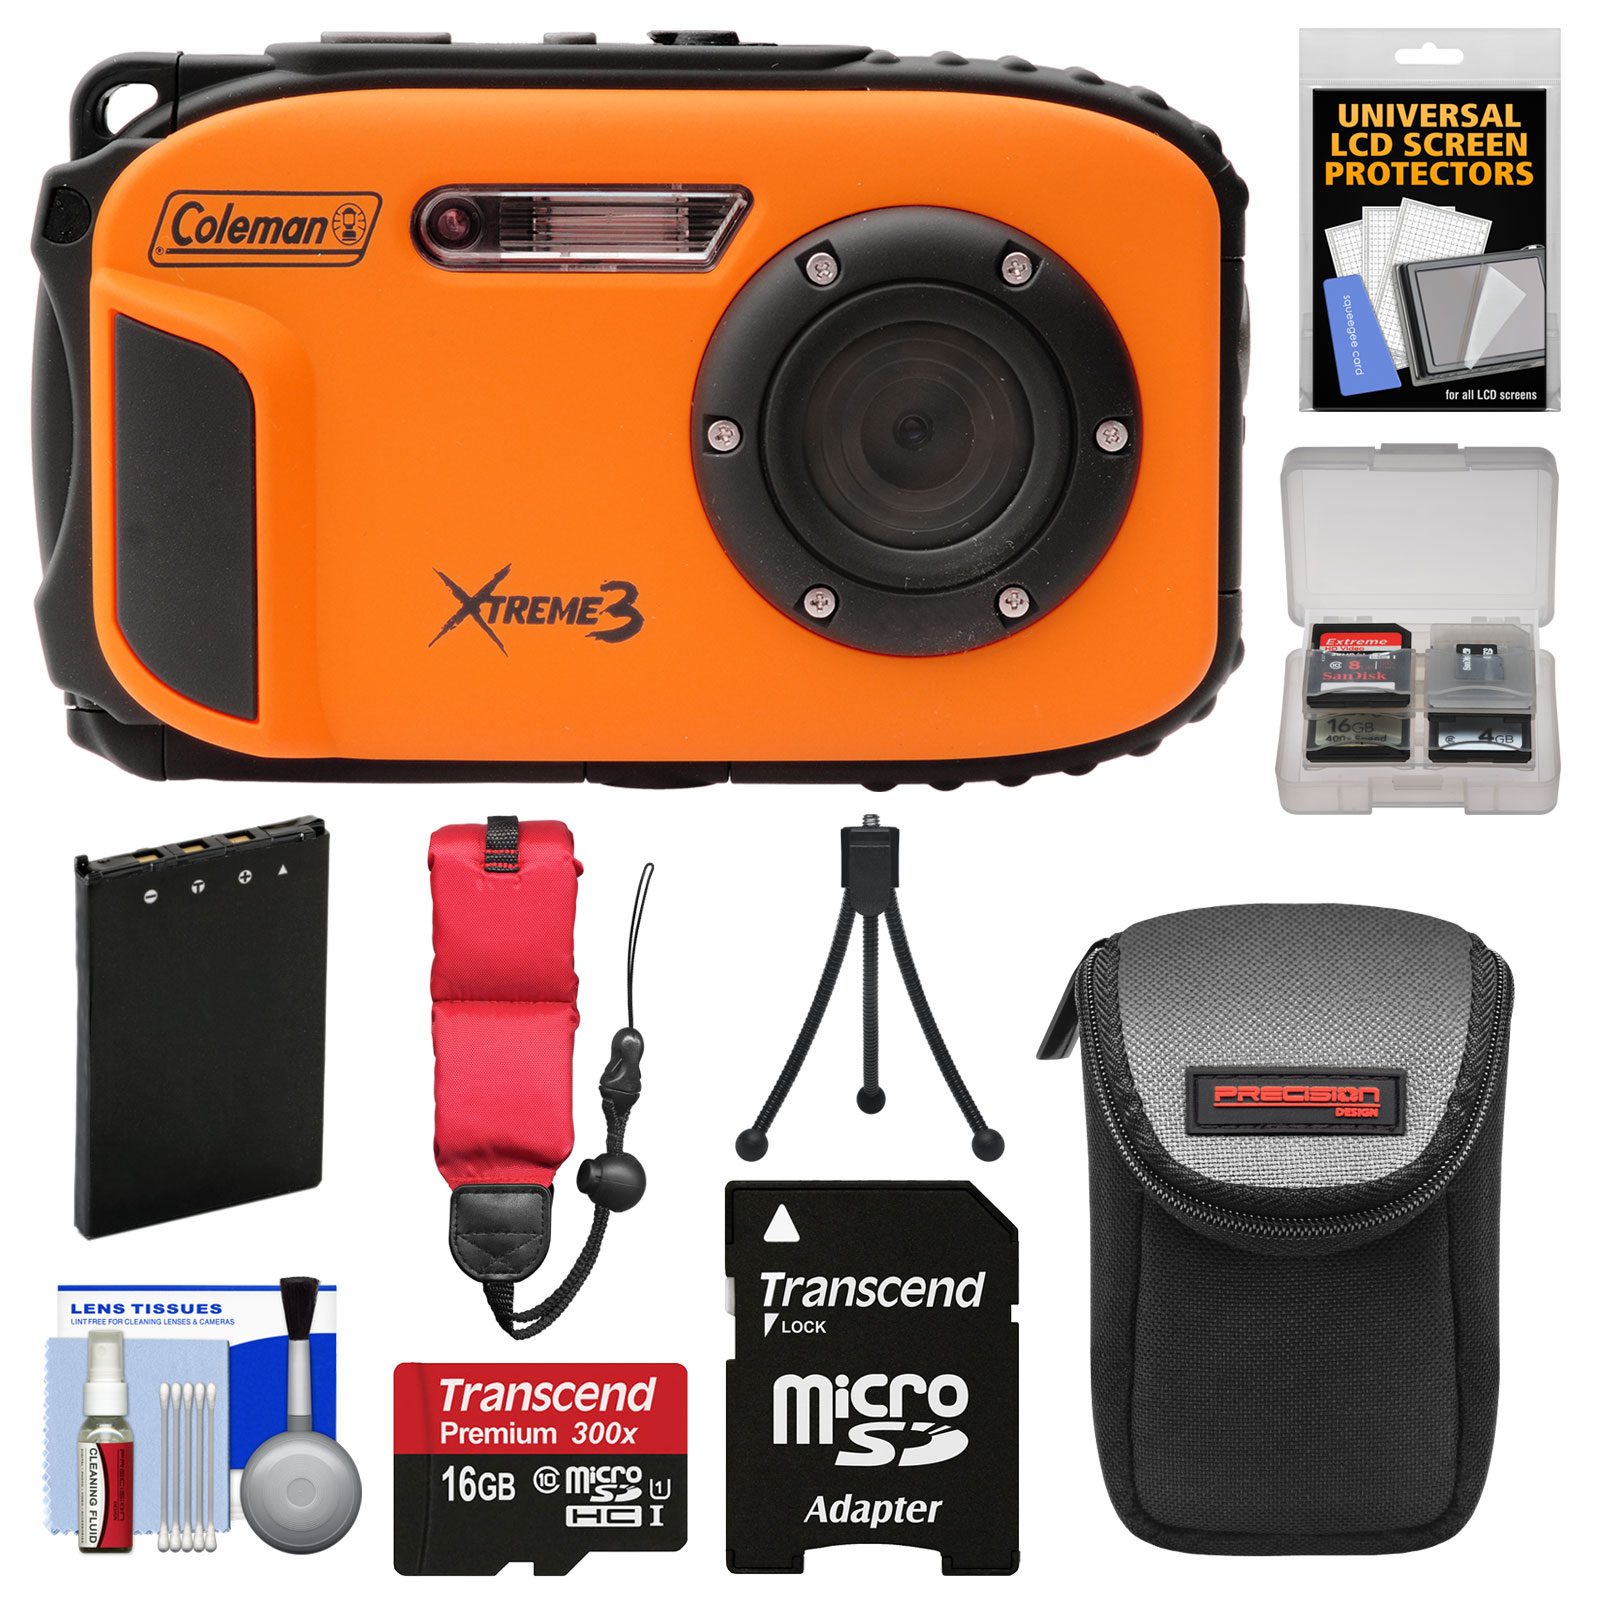 Coleman Xtreme3 C9WP Shock & Waterproof 1080p HD Digital Camera (Orange) with 16GB Card + Battery + Case + Tripod +... by Coleman